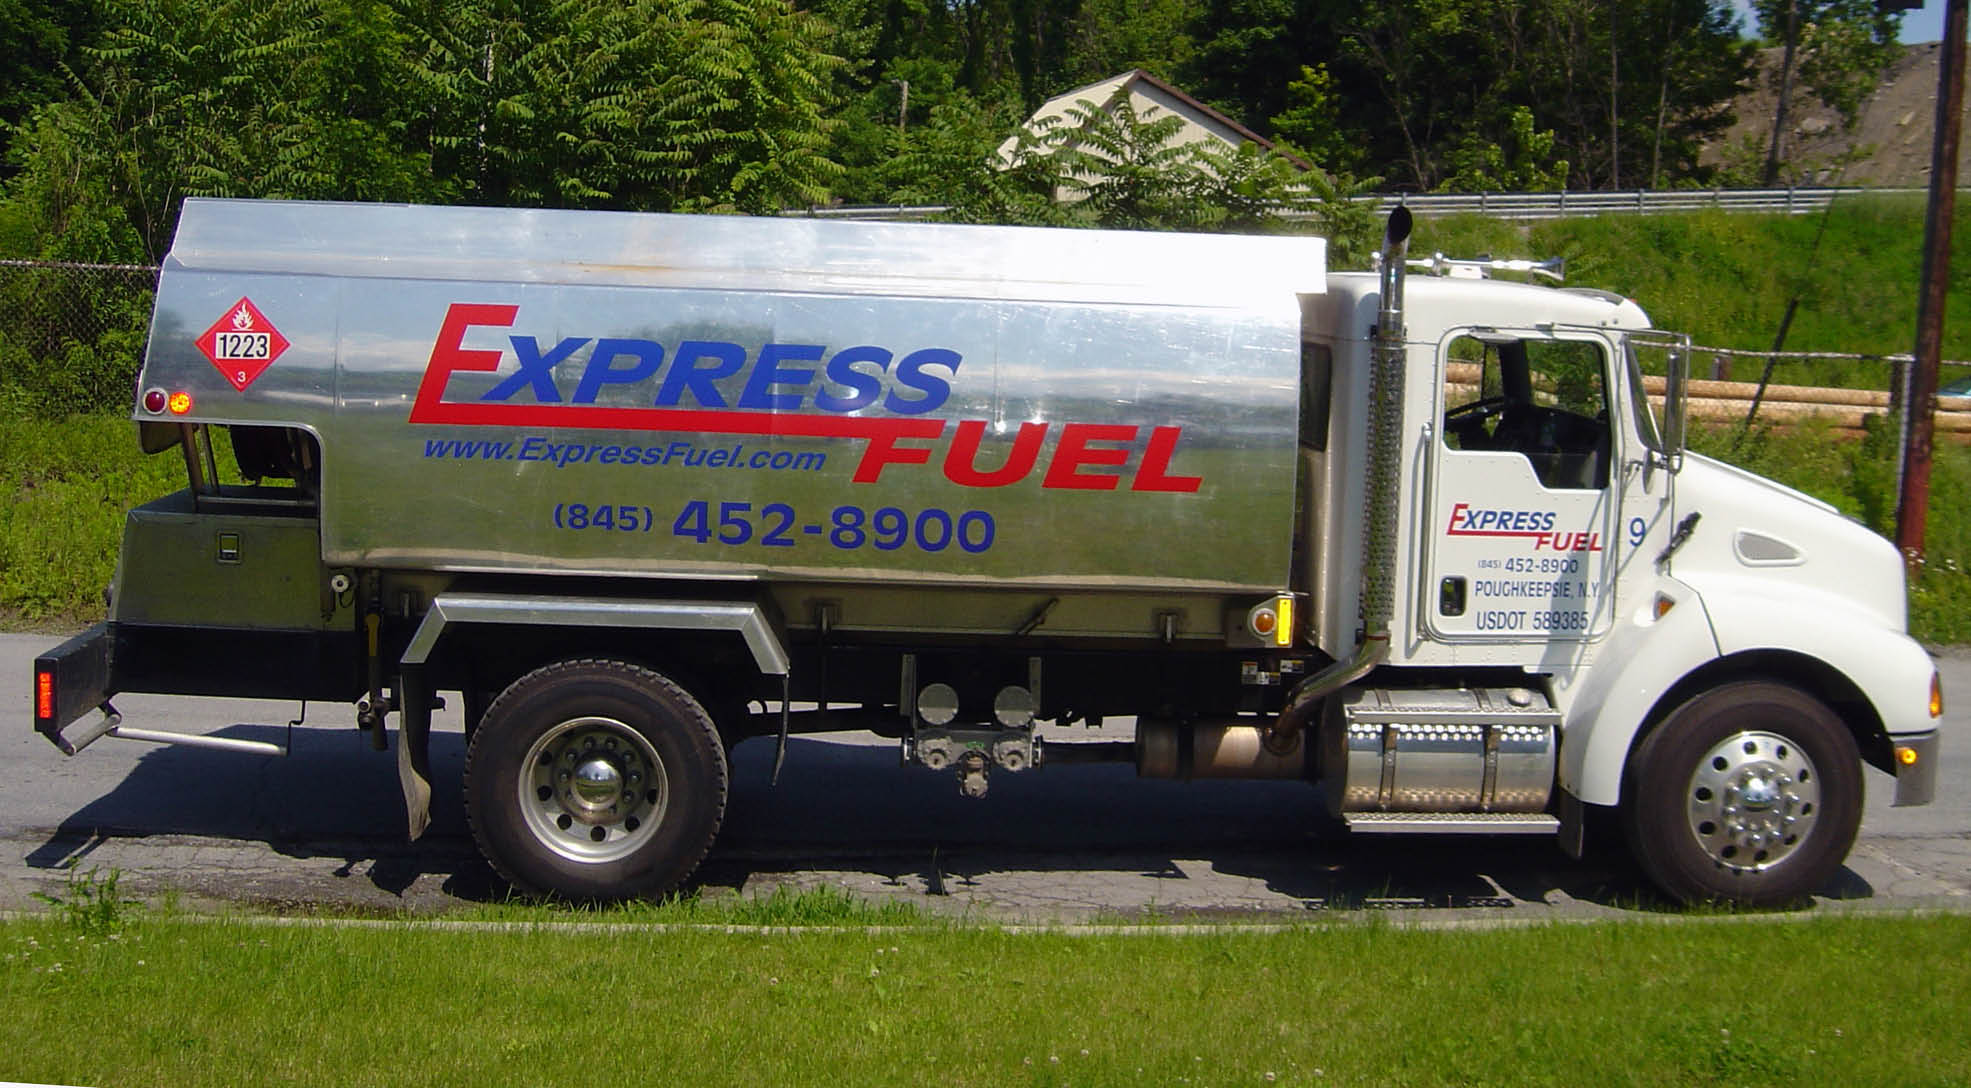 Express Fuel has top-of-the-line transportation for their heating oil.